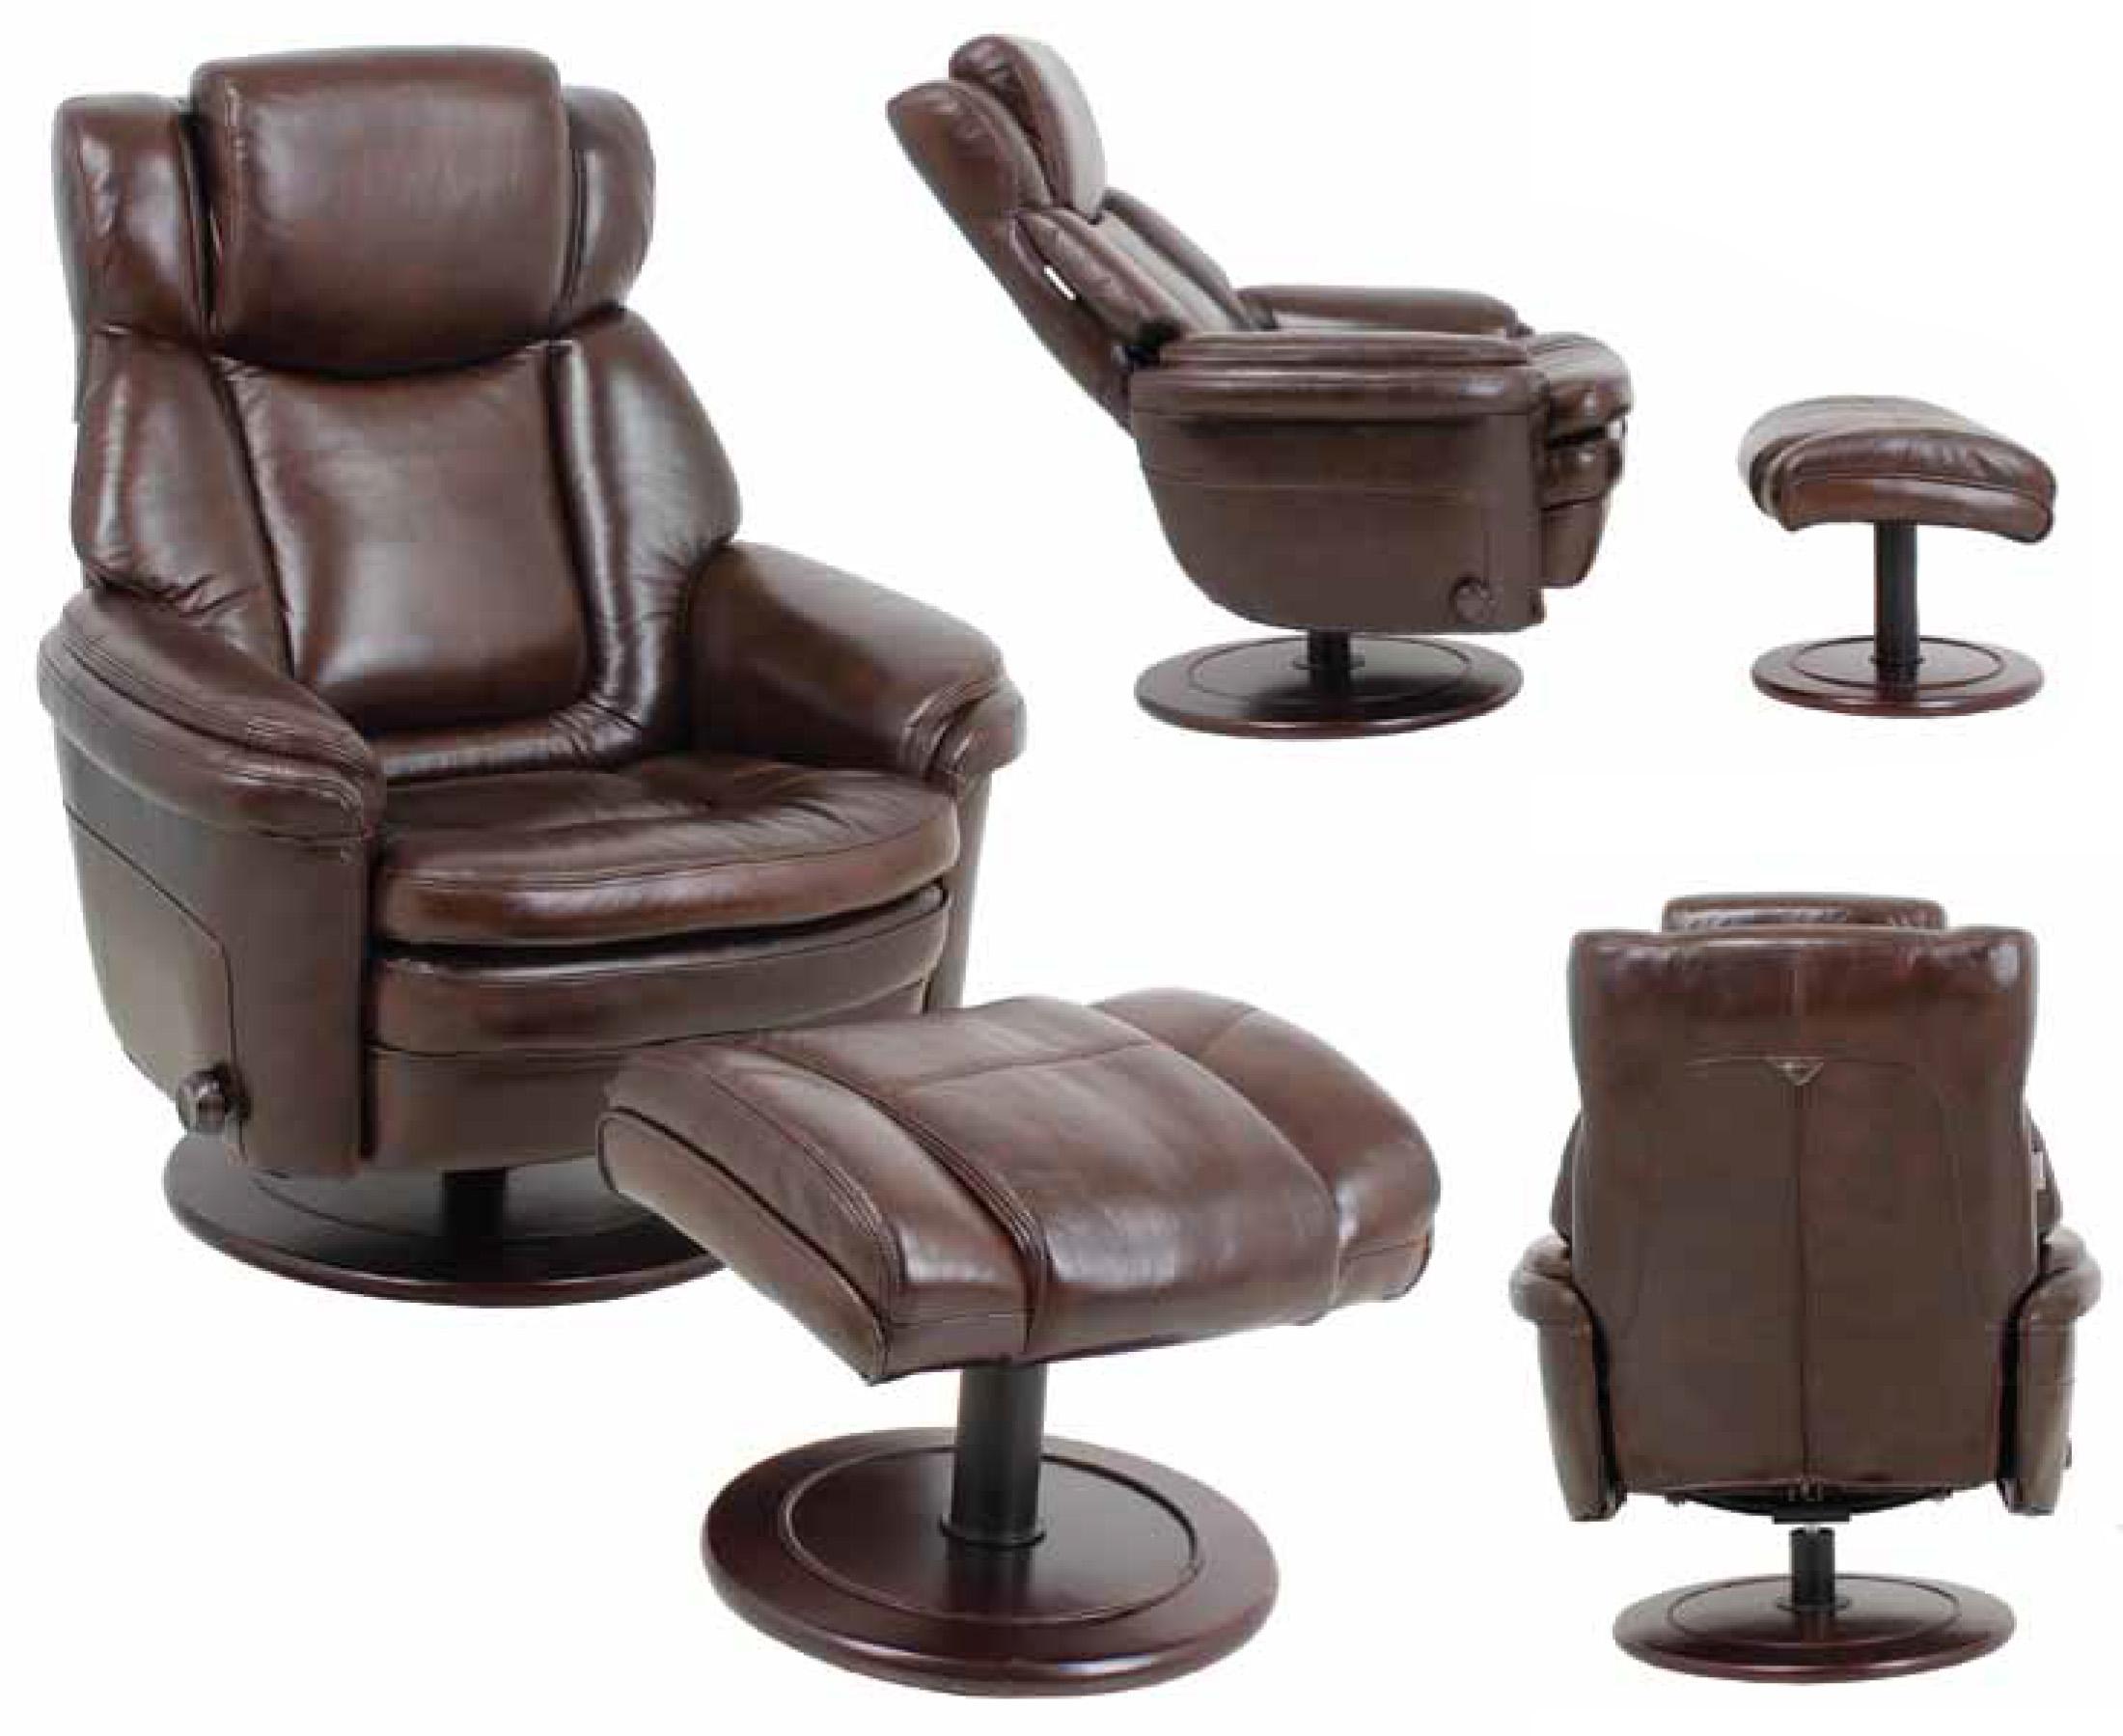 leather eclipse ii recliner chair and ottoman